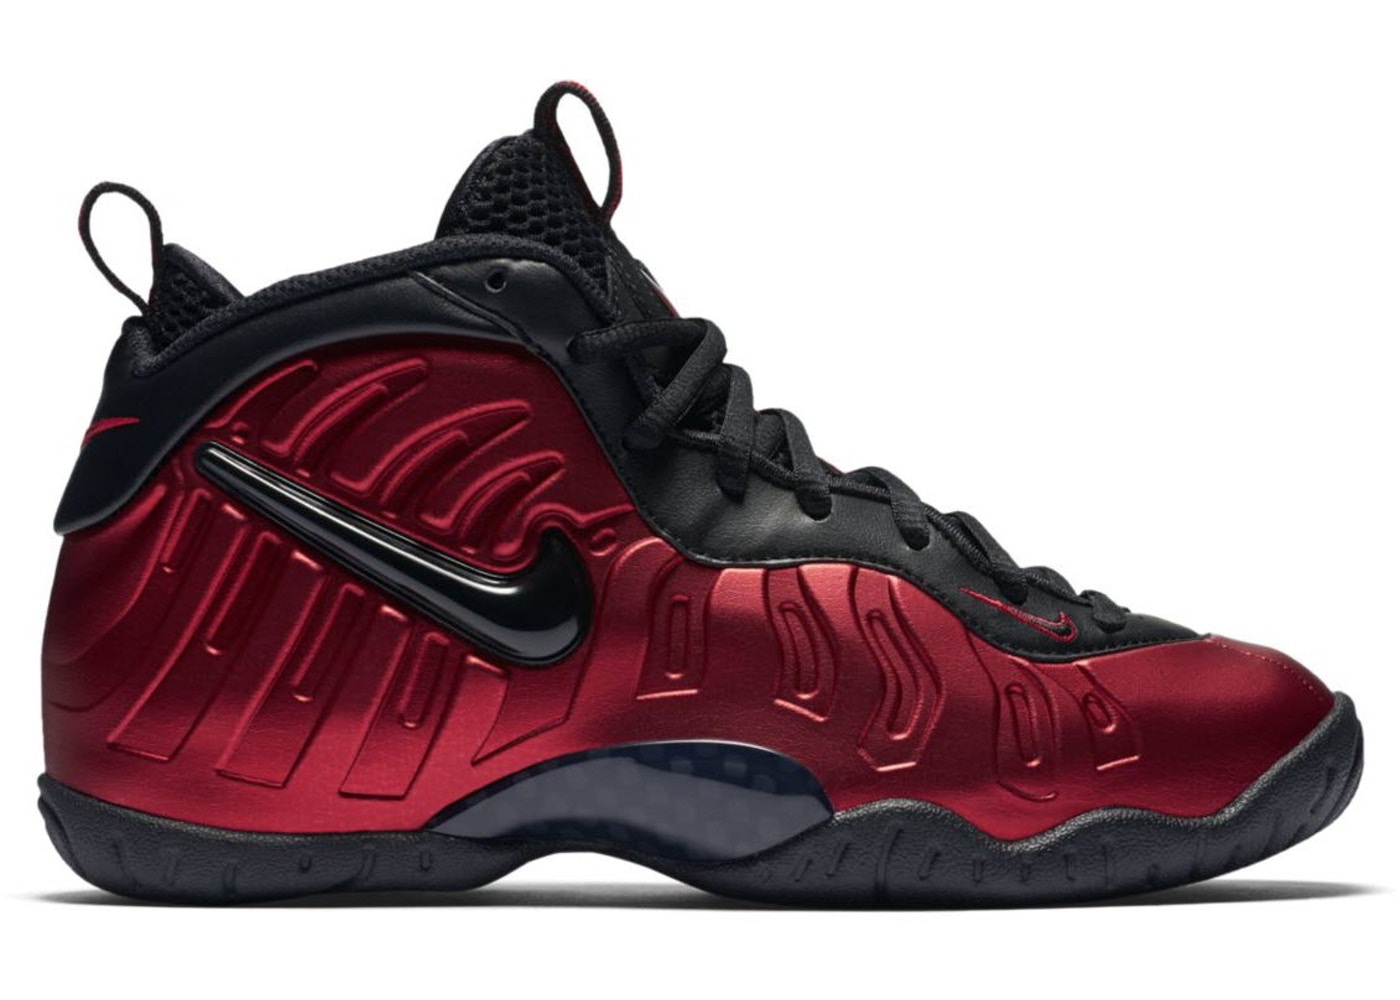 f293132bc563e Air Foamposite Pro University Red (GS) - 644792-604